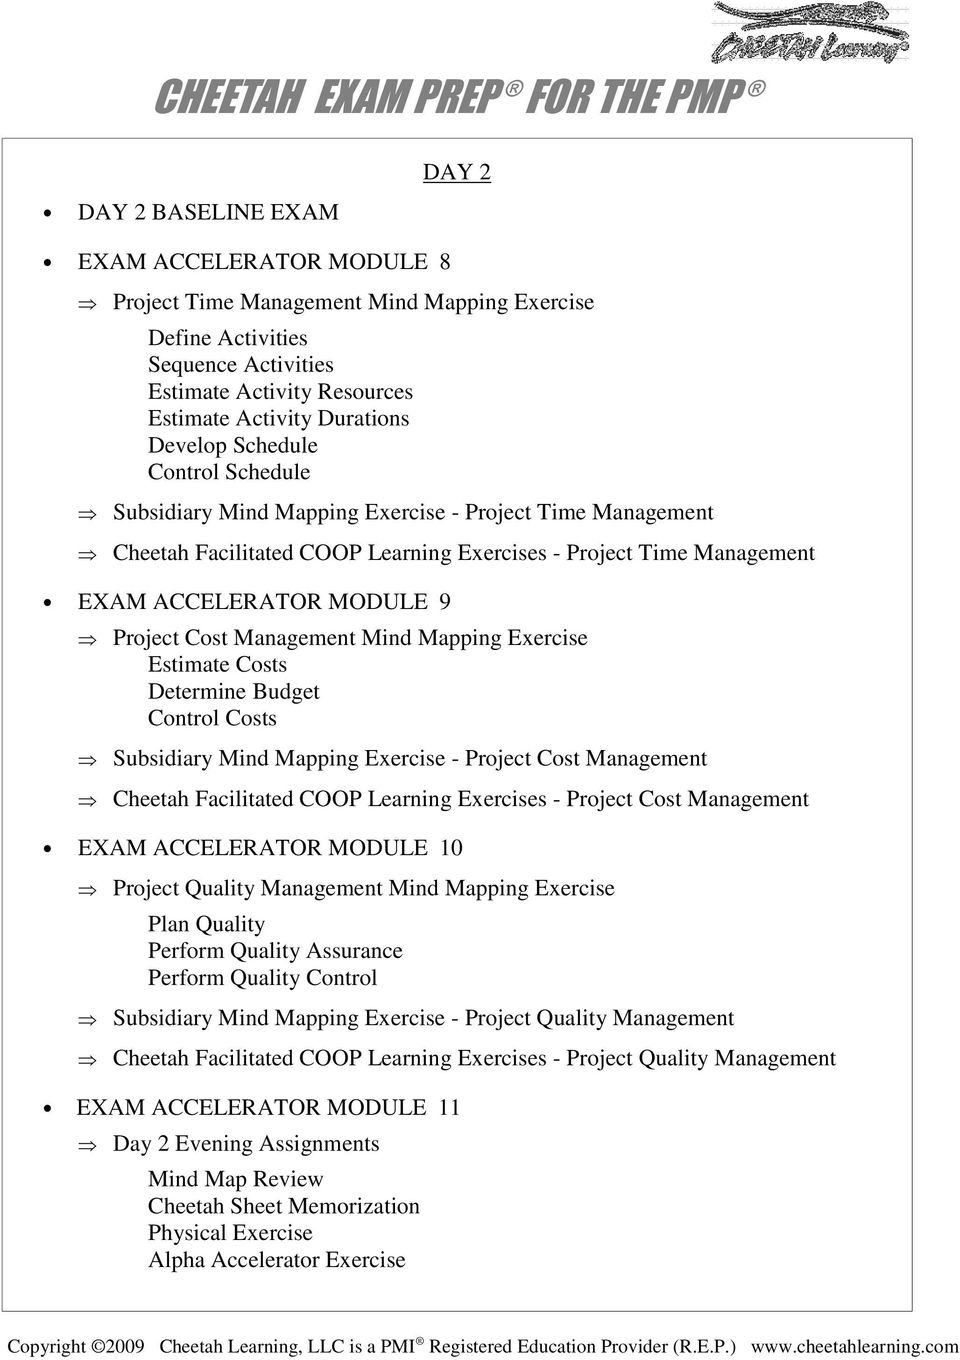 Management Mind Mapping Exercise Estimate Costs Determine Budget Control Costs Subsidiary Mind Mapping Exercise - Project Cost Management Cheetah Facilitated COOP Learning Exercises - Project Cost